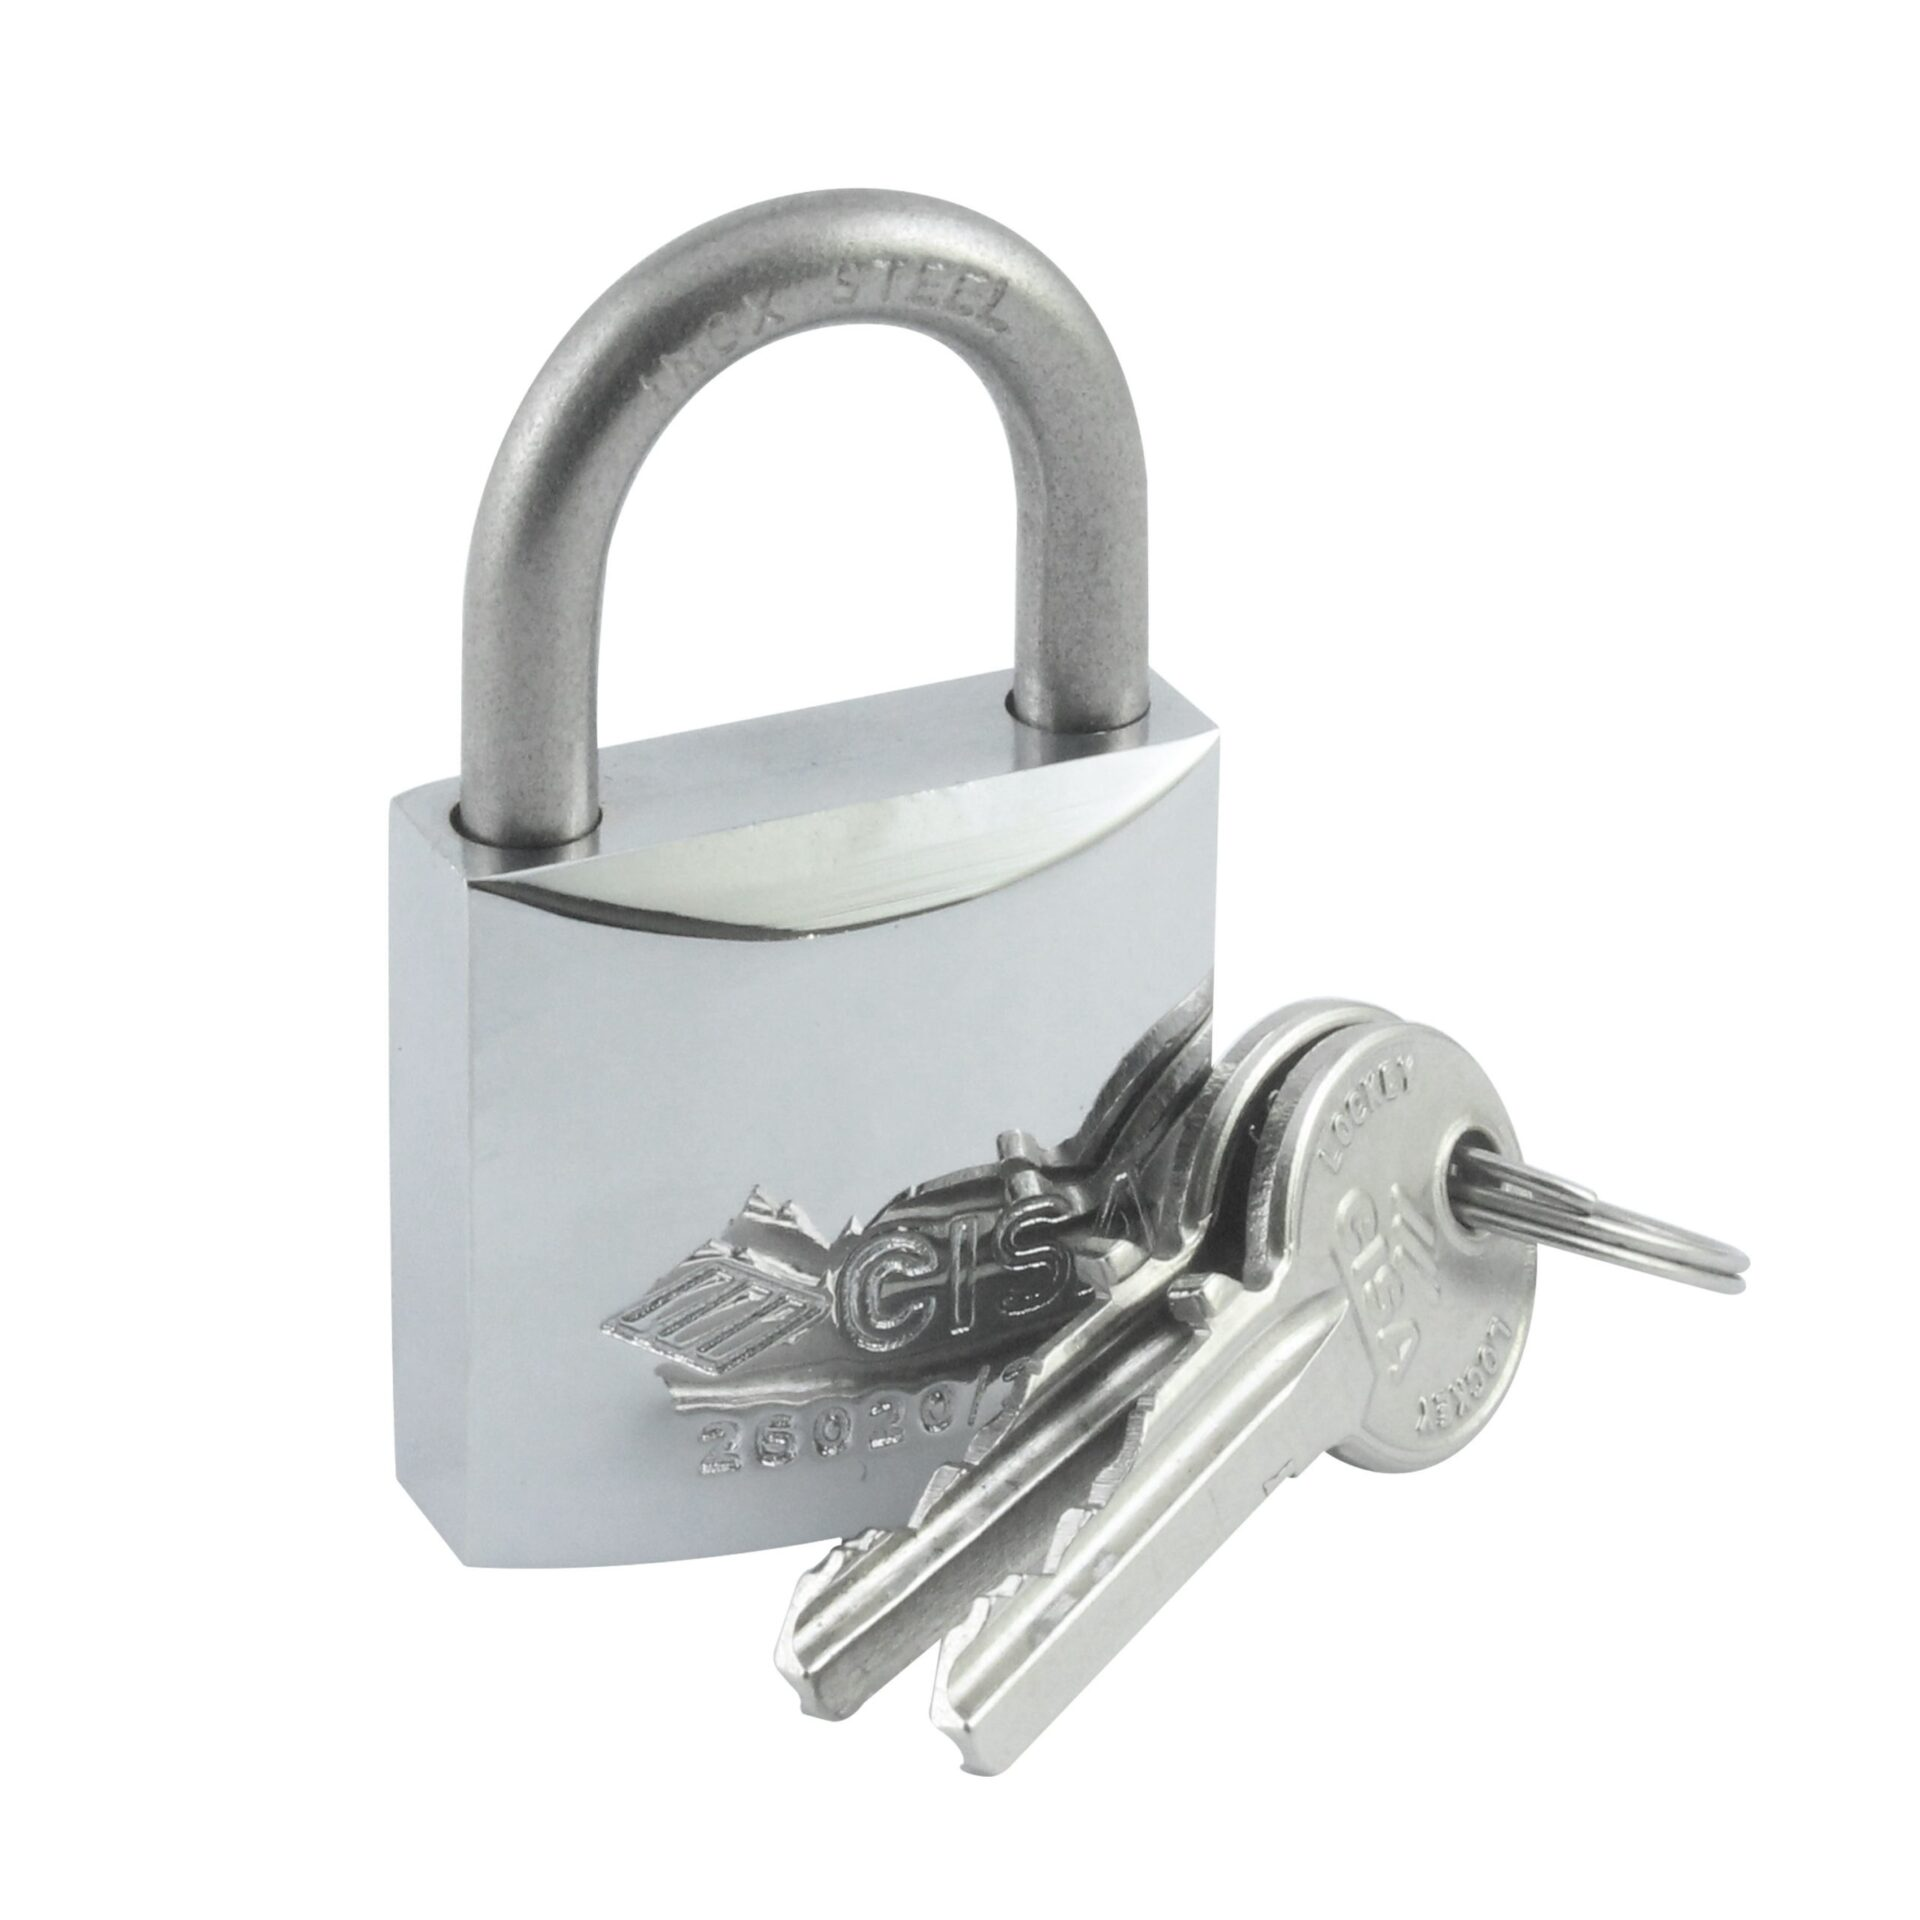 Heavy Duty Weatherproof Shackle Chromed Padlock 1-3/16″ (30 mm)